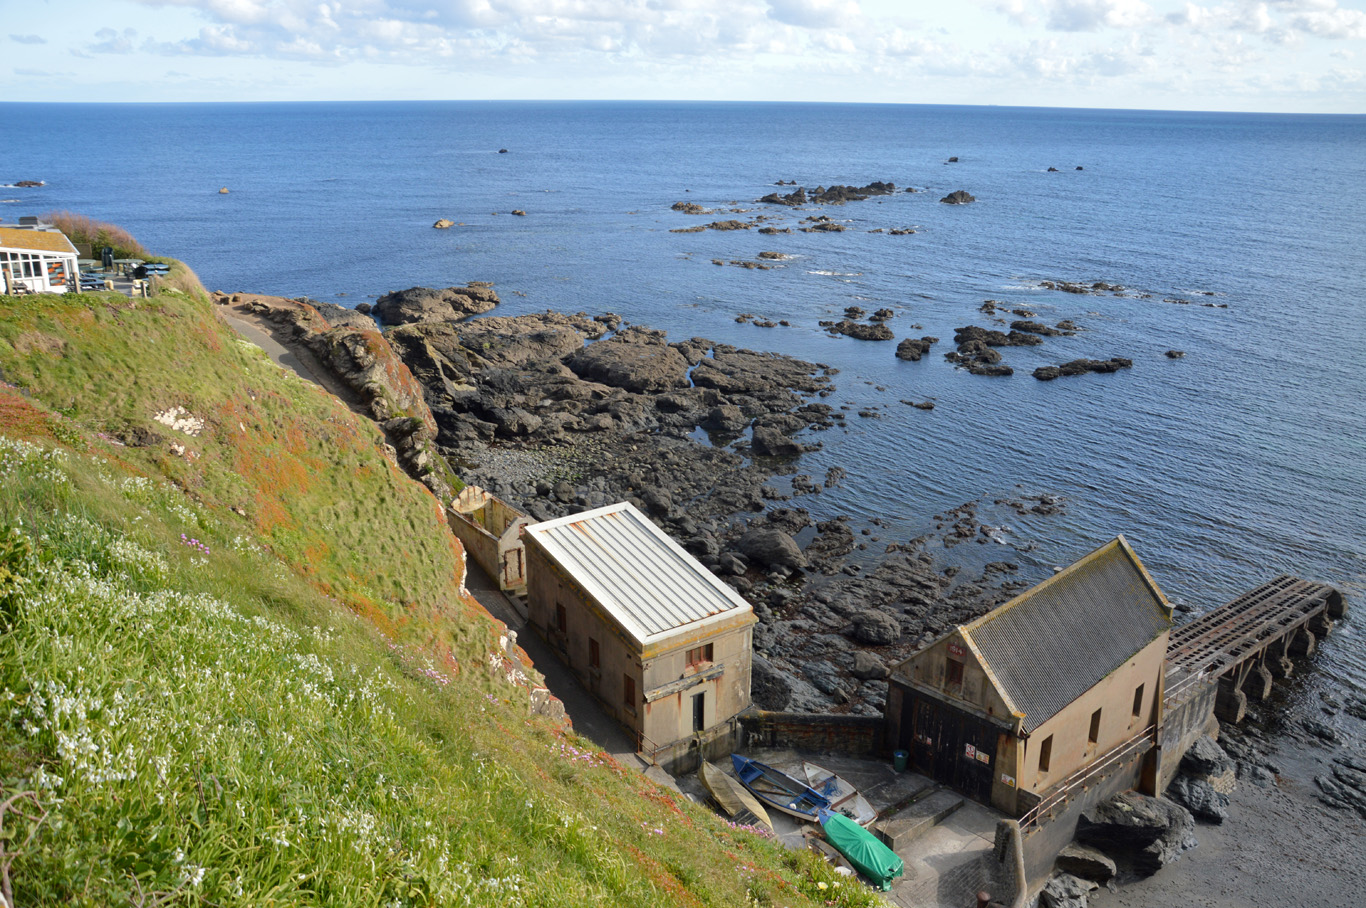 Lizard Point - the southernmost point of England